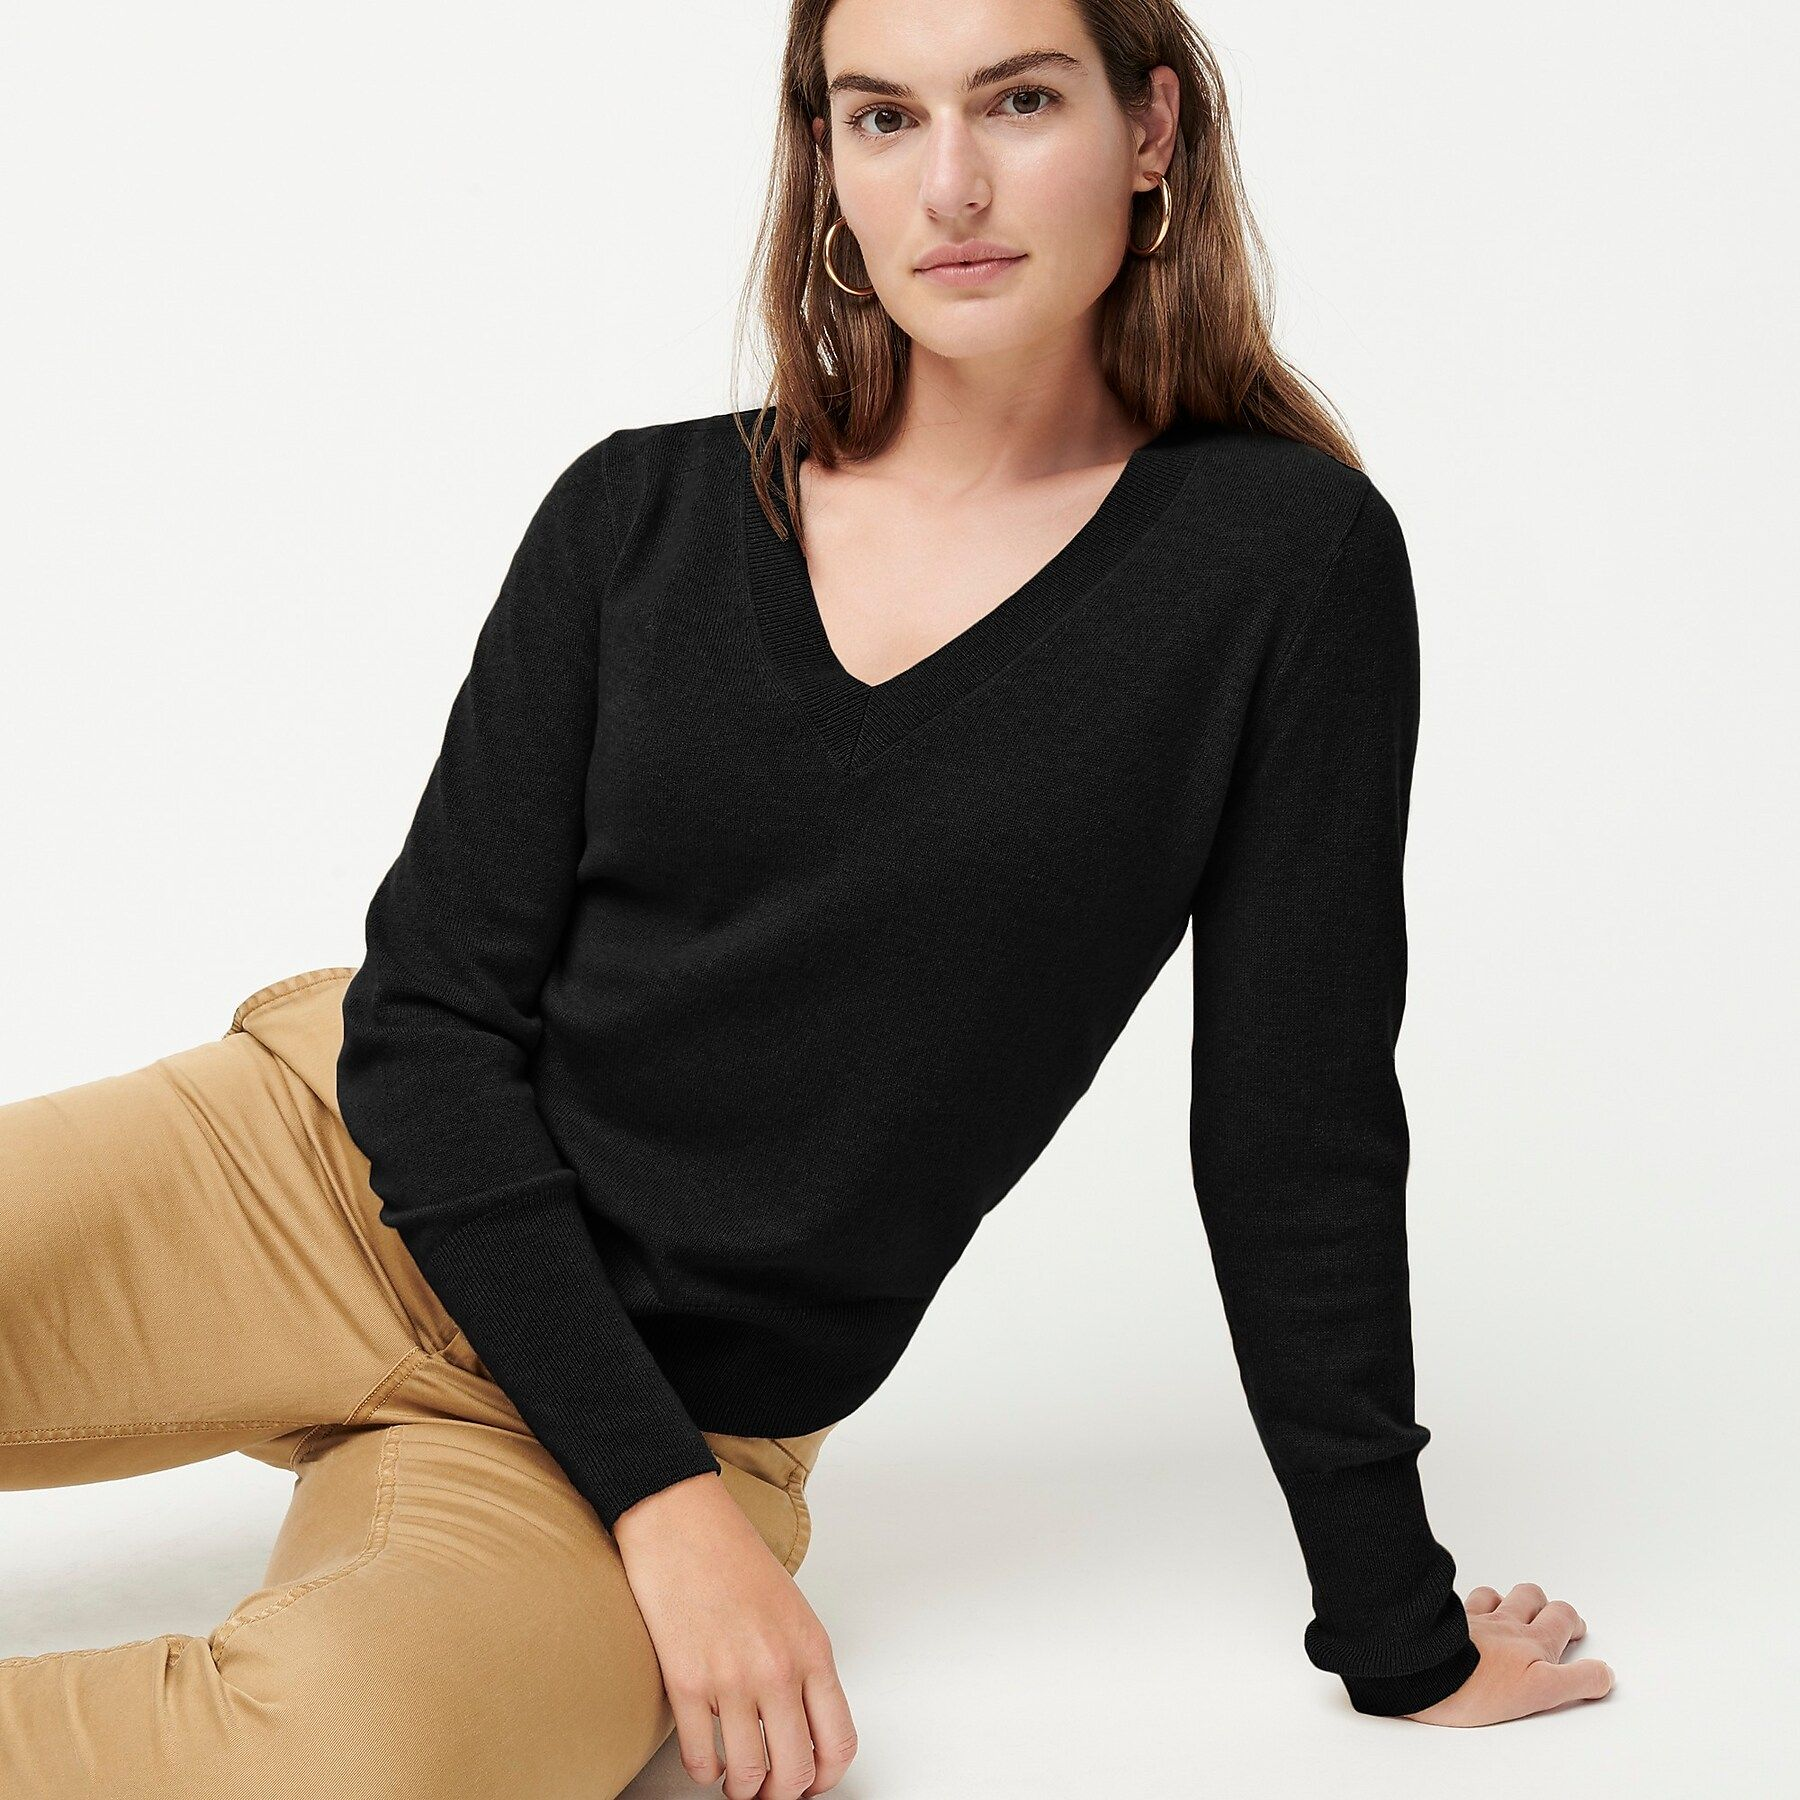 J.Crew: Long sleeve Everyday Cashmere Fitted V neck Sweater